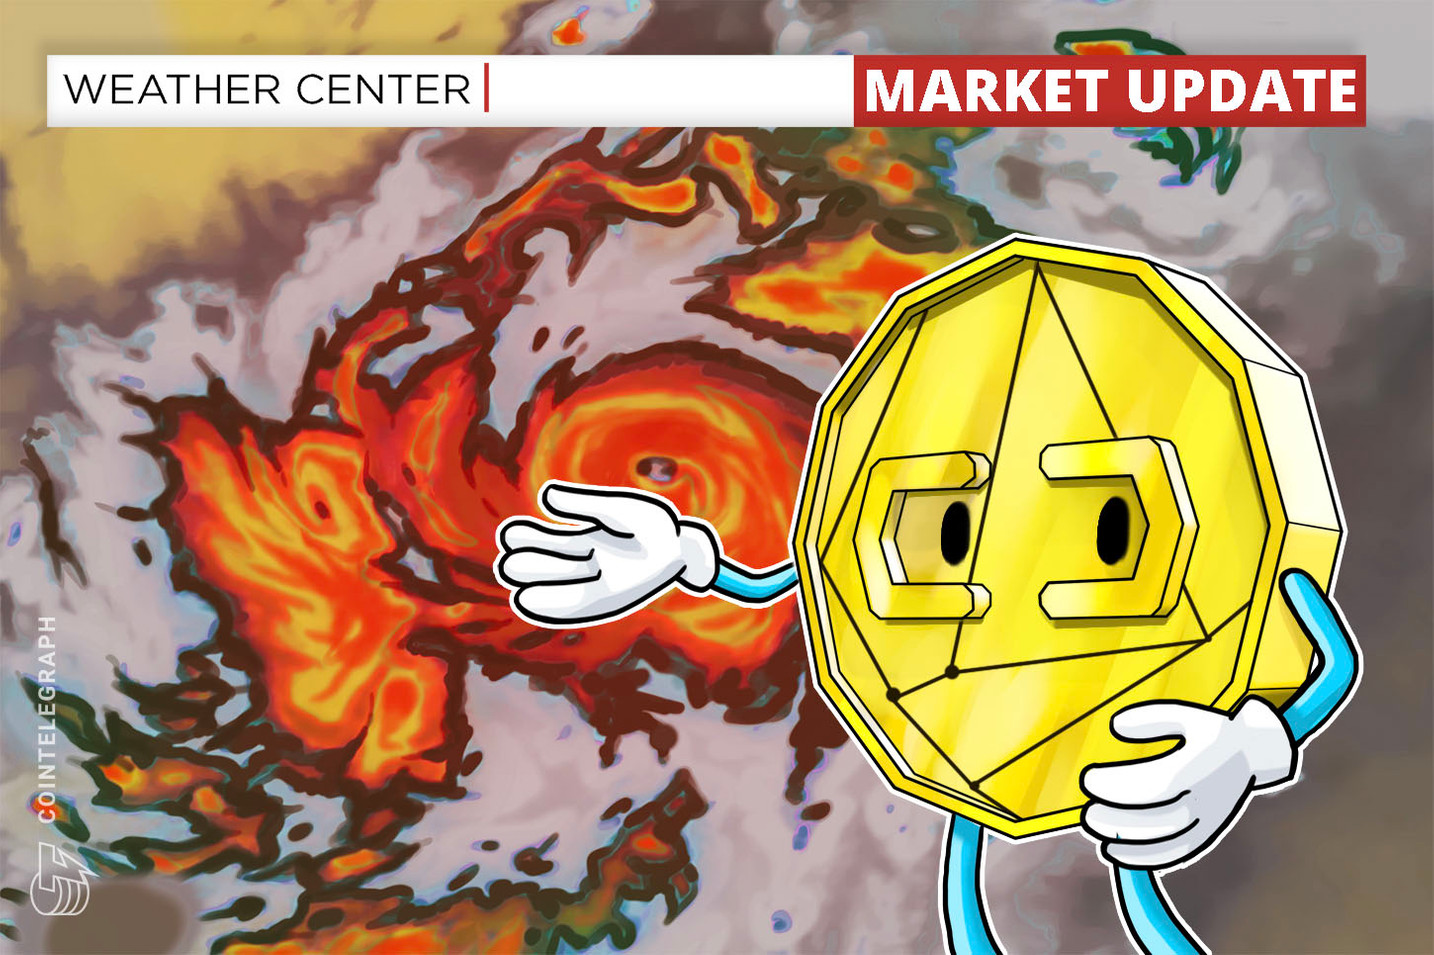 Crypto Markets Continue Trading in Red, Oil Reports Losses